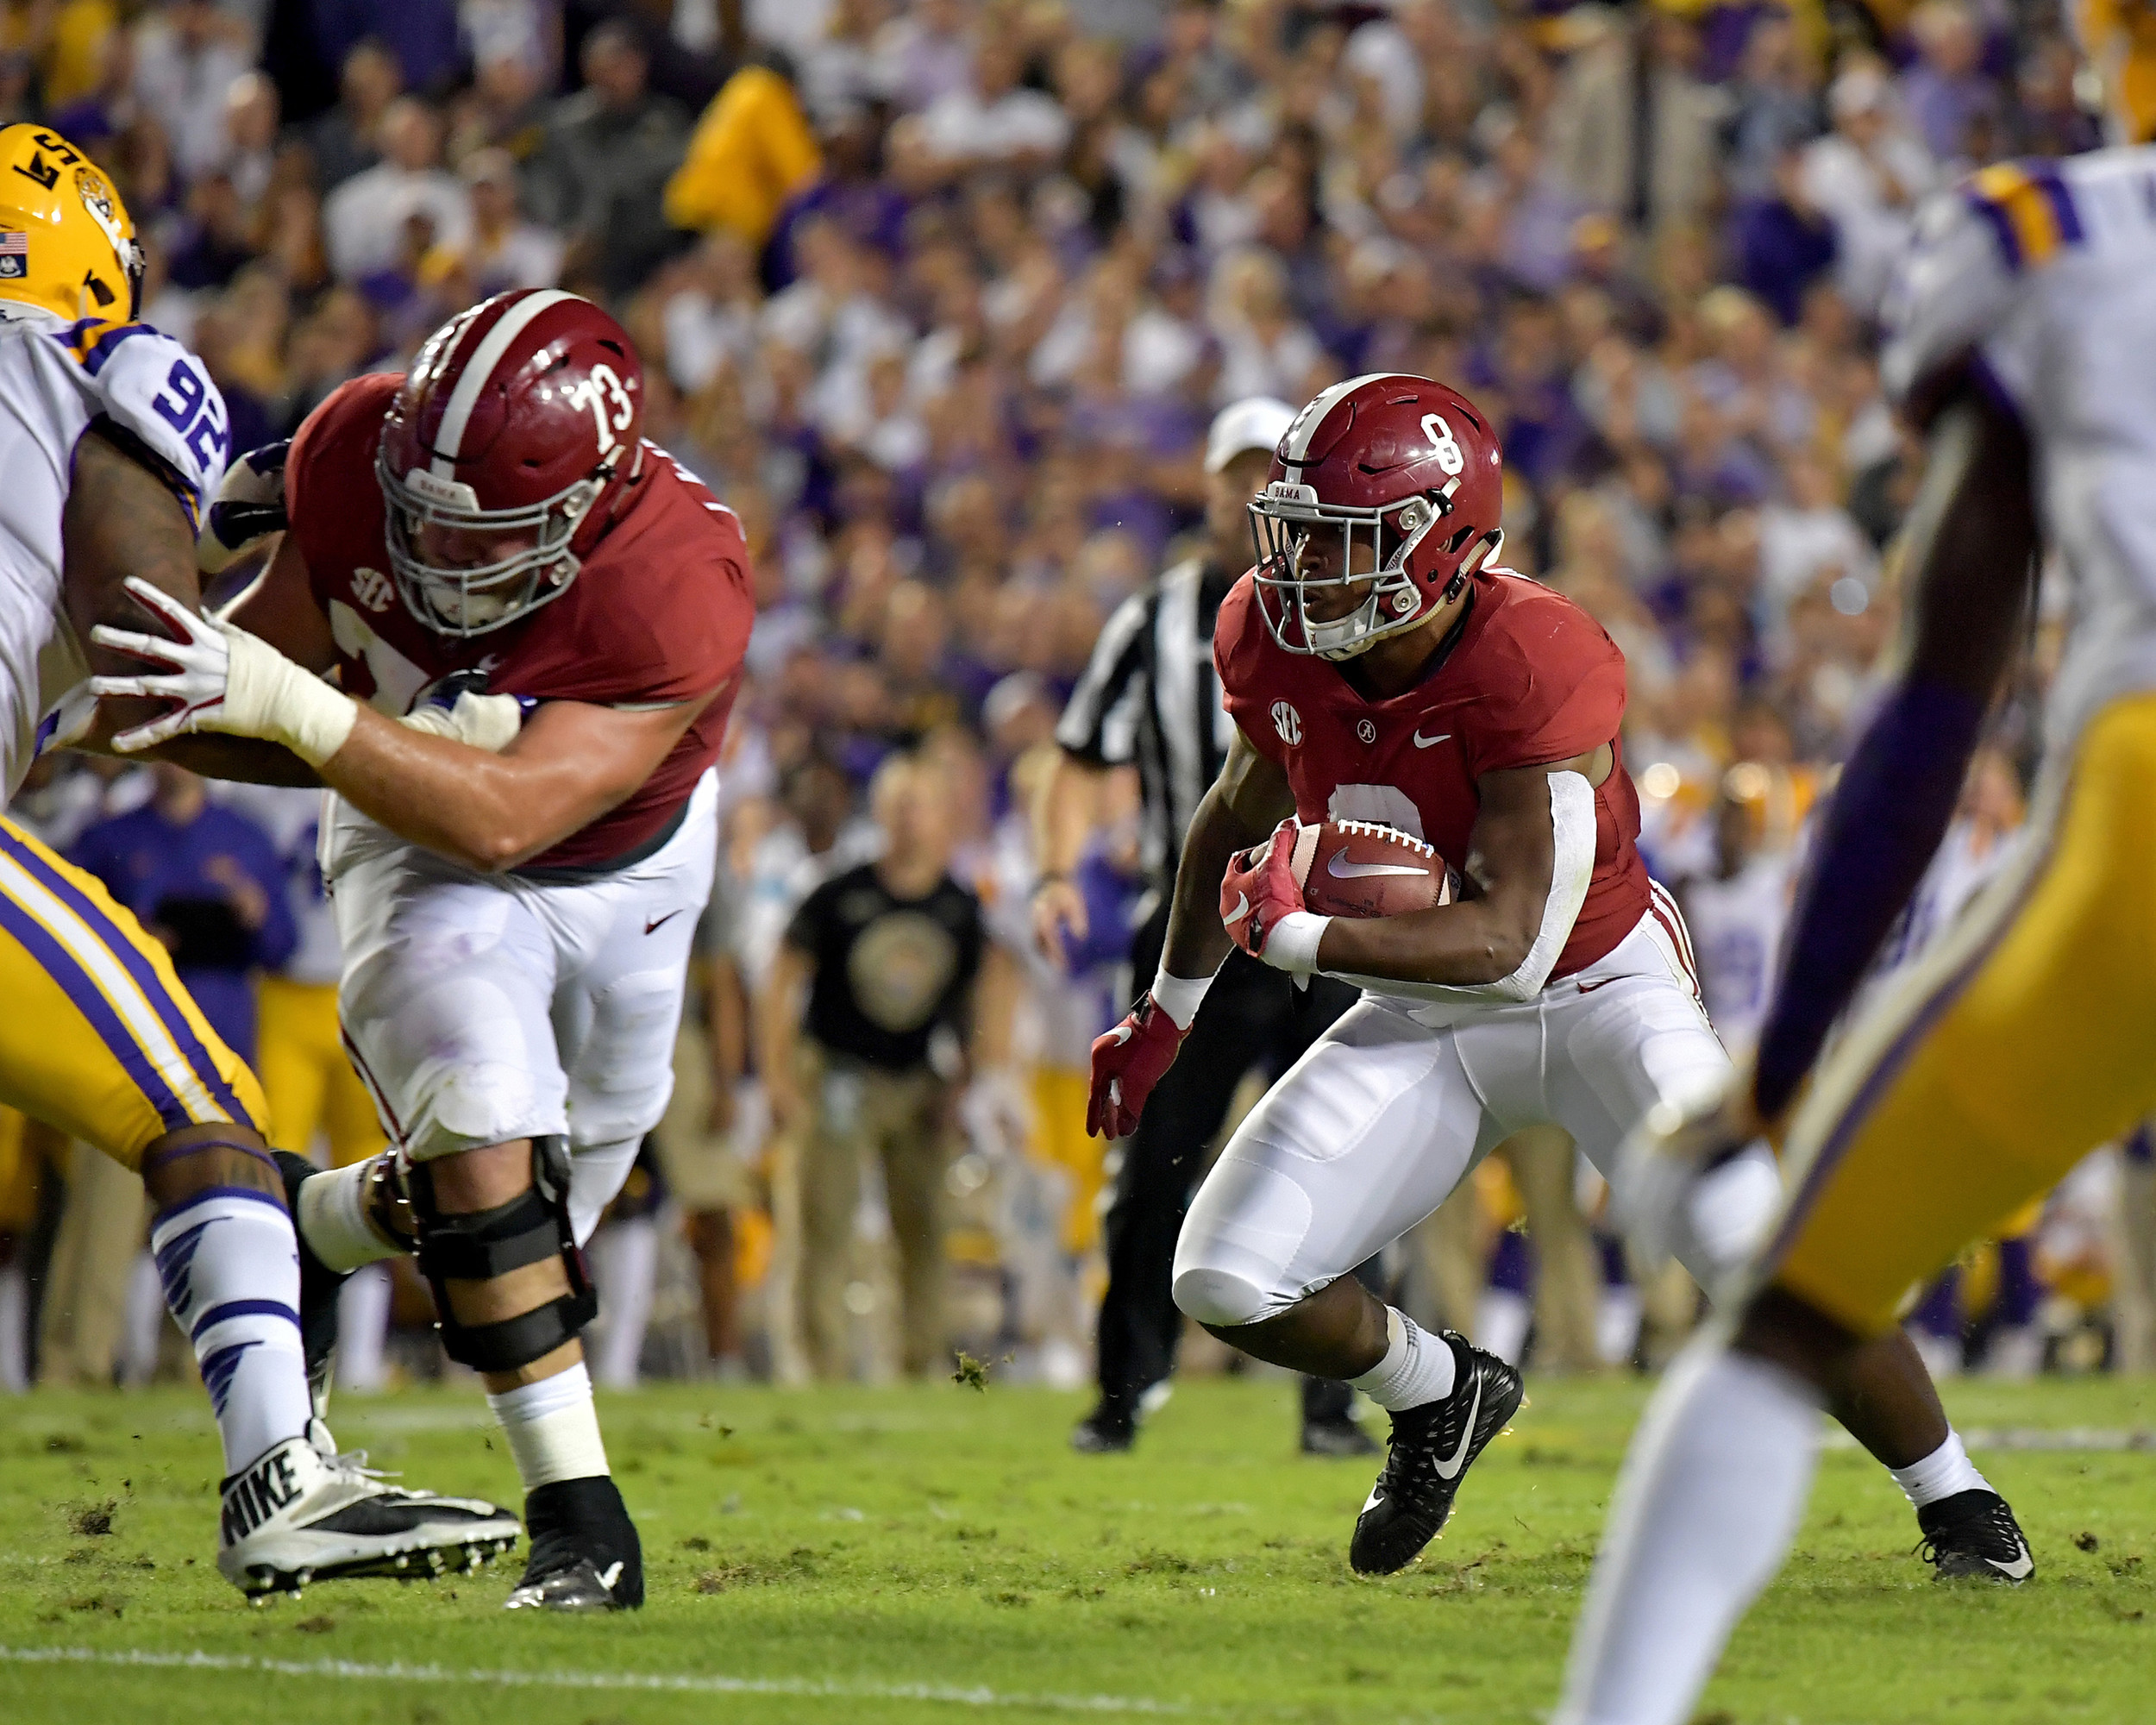 Alabama Crimson Tide running back Josh Jacobs (8) with a carry up the middle during the first half of an NCAA football game against the LSU Tigers Saturday, November 3, 2018, at Tiger Stadium in Baton Rouge, La. Alabama wins 29-0. (Photo by Lee Walls)